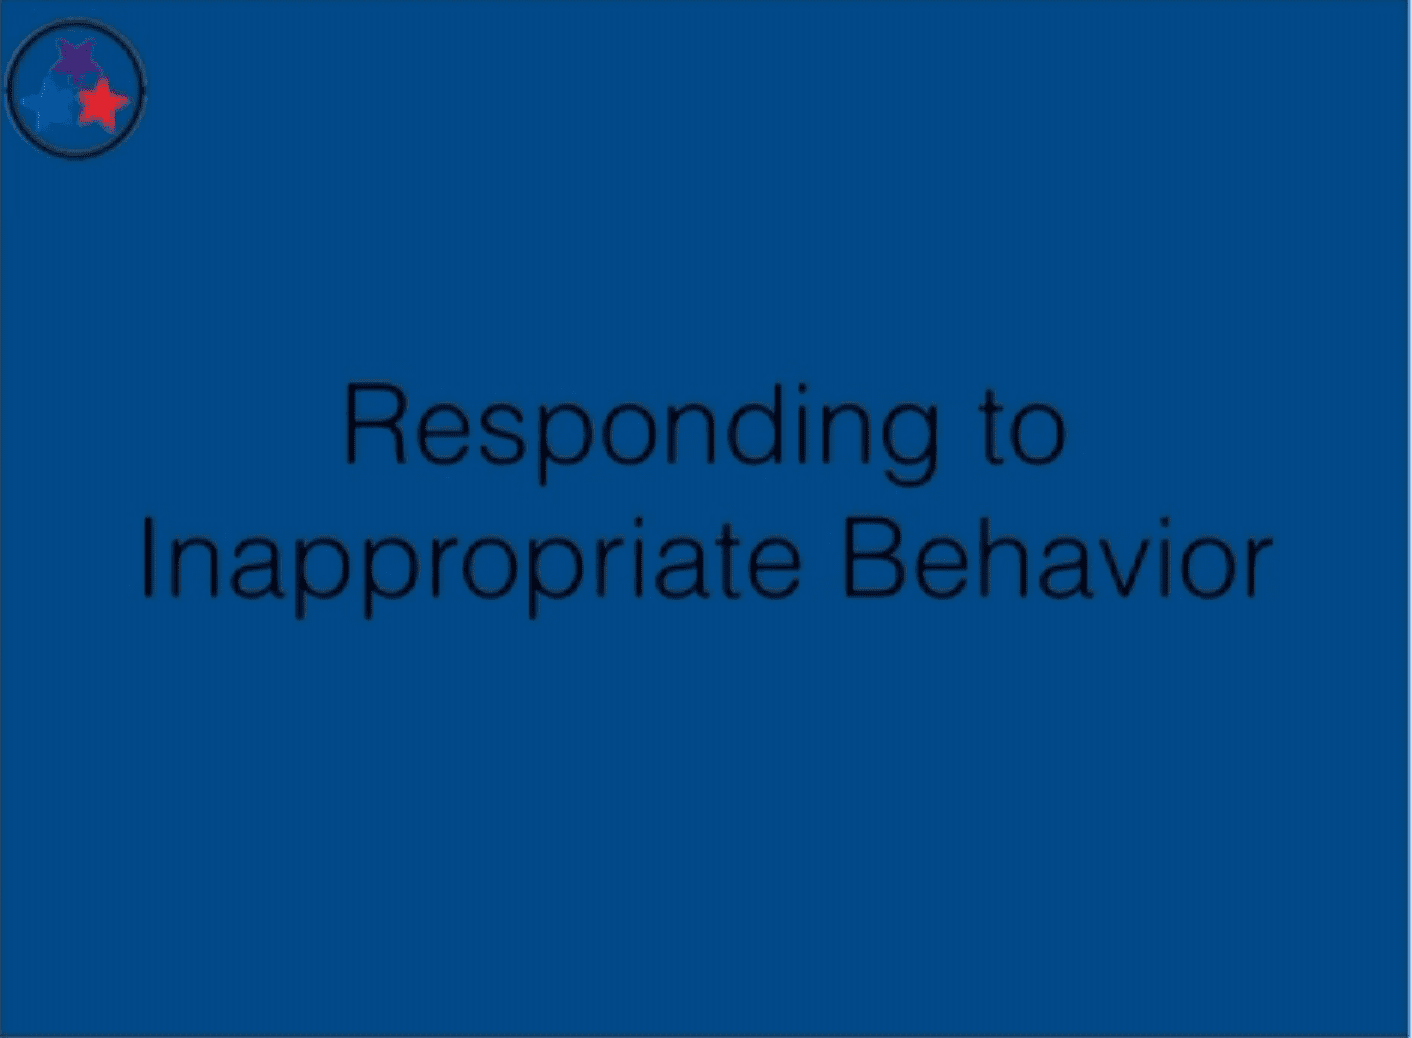 Classroom Management 9 - Responding to Inappropriate Behavior